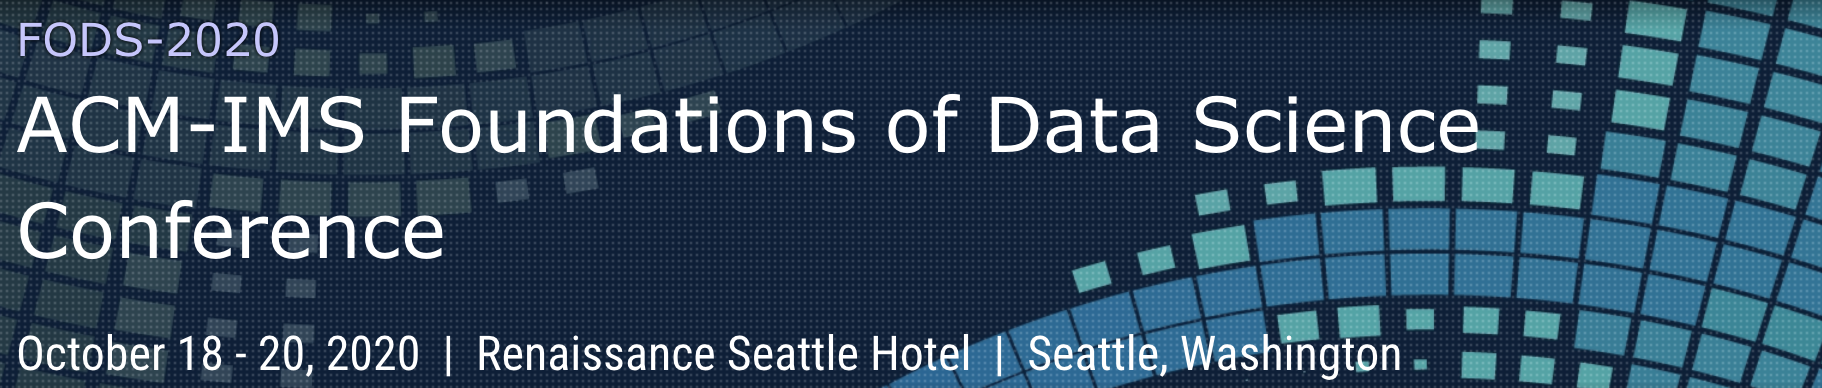 ACM-IMS Foundations of Data Science Conference (FODS 2020)